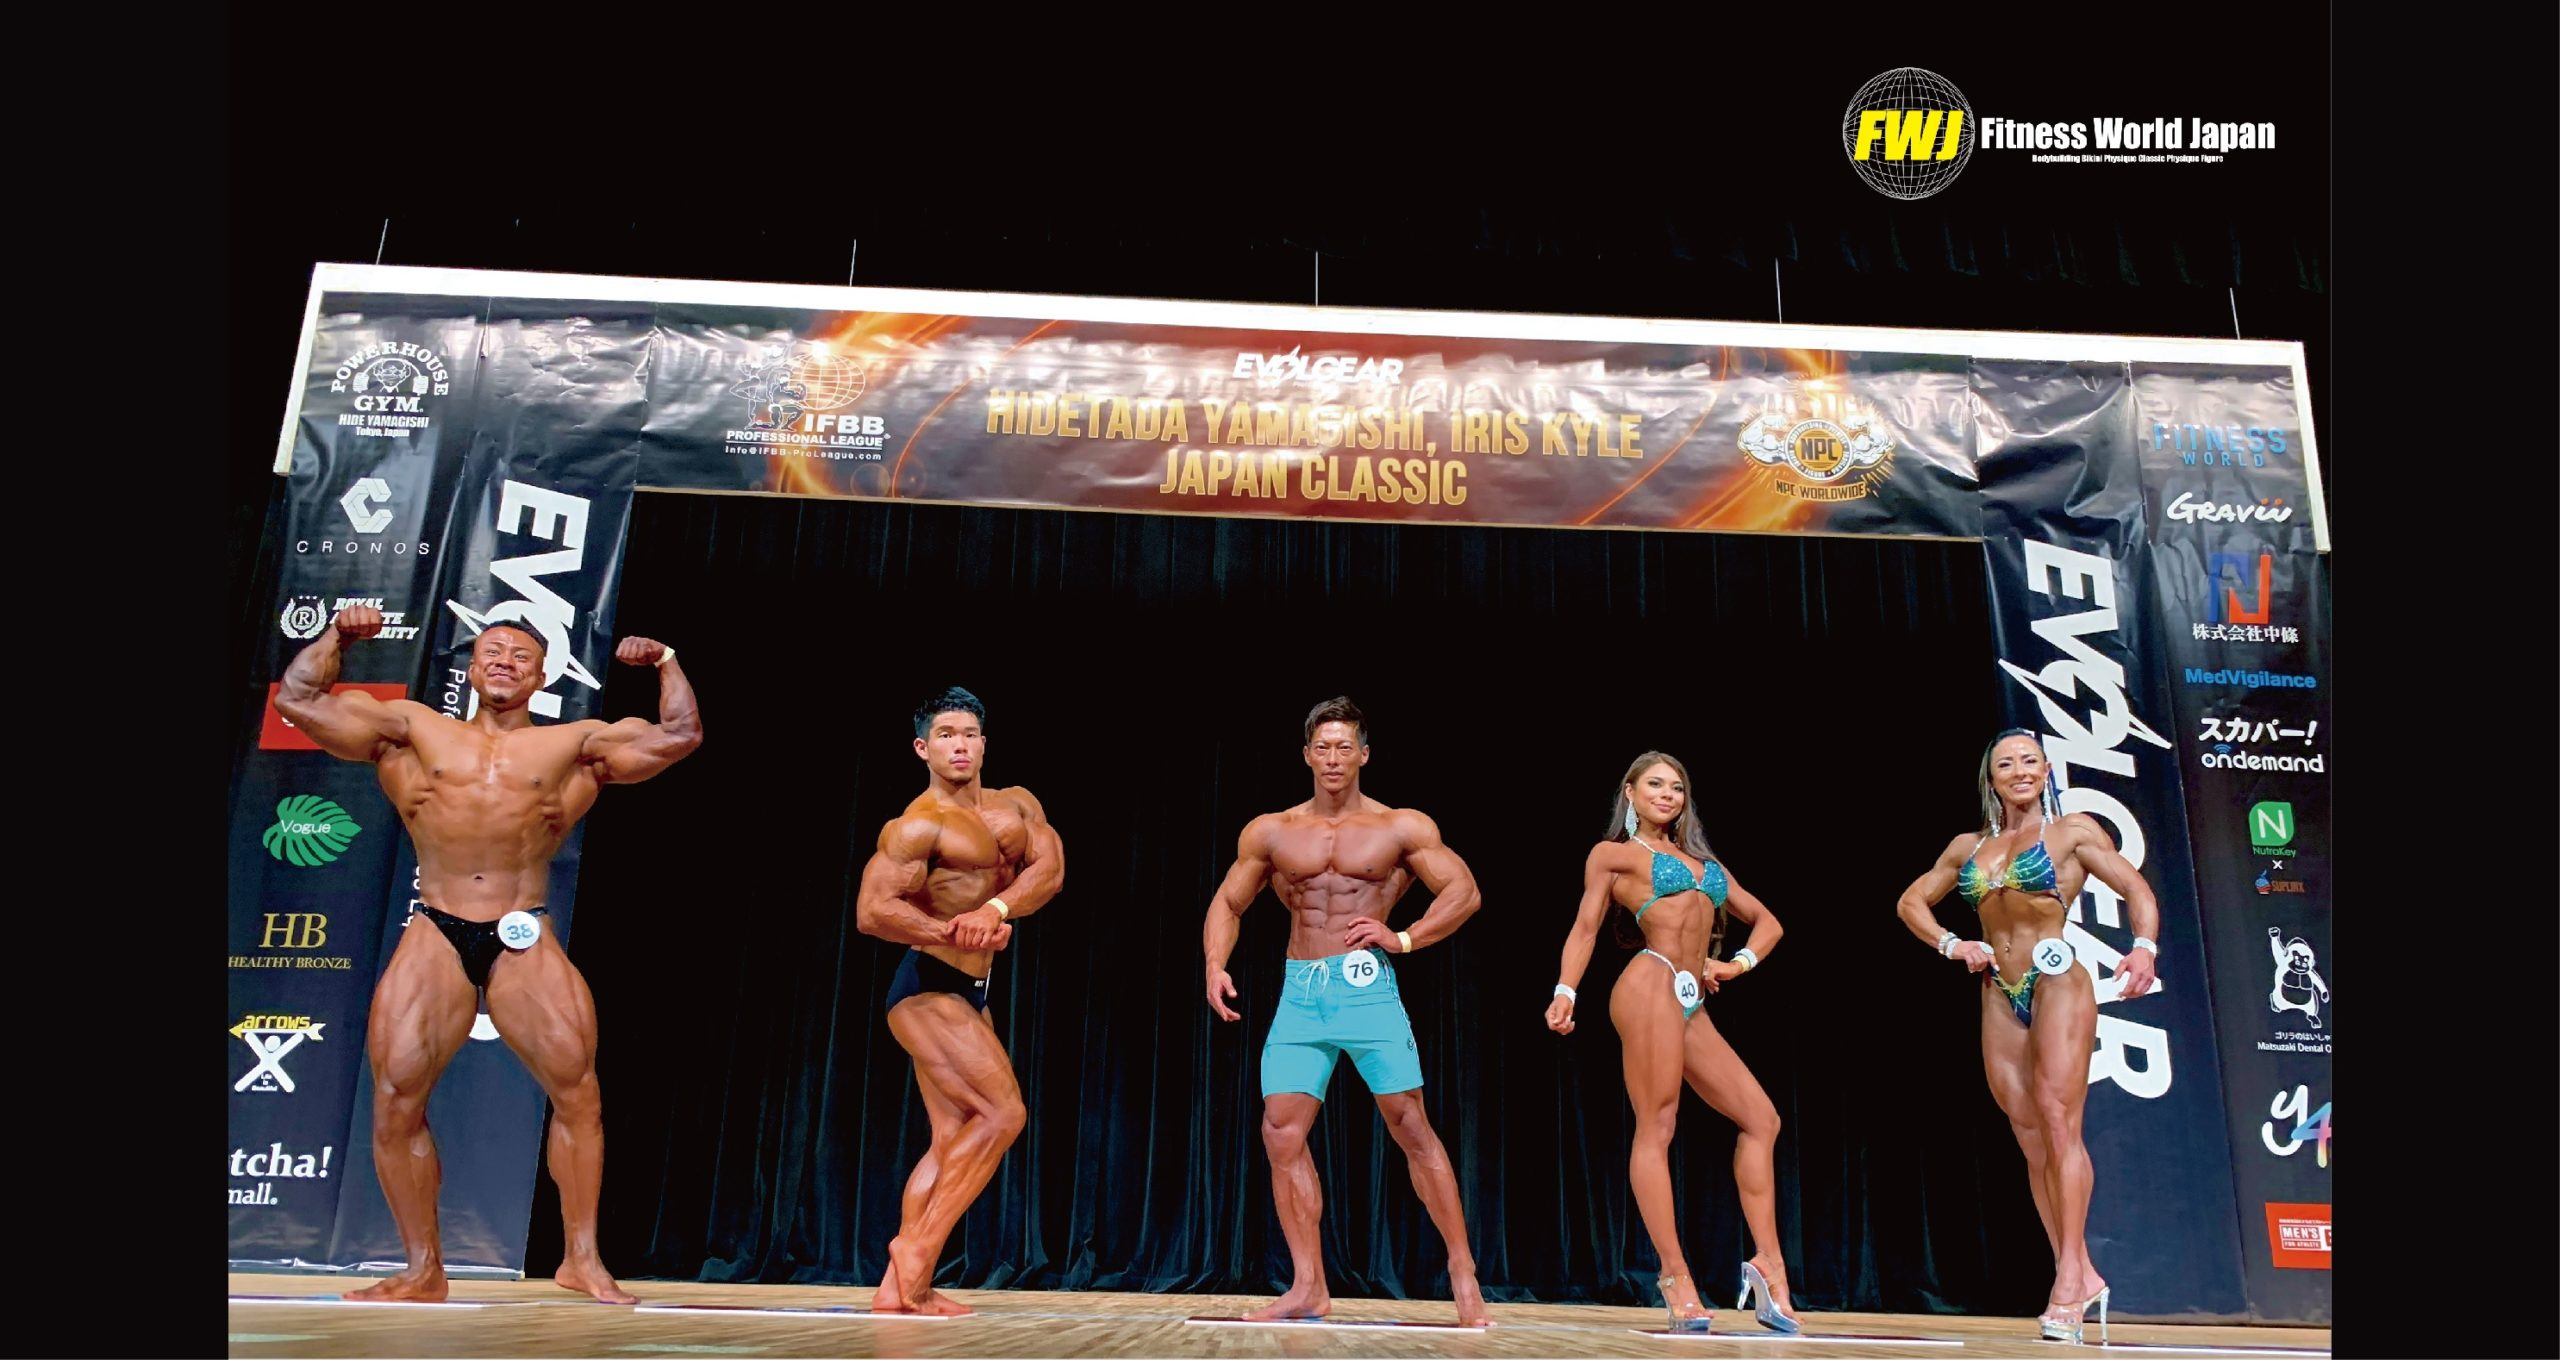 EVOLGEAR Hidetada Yamagishi, Iris Kyle Japan Classic National Pro Qualifier ジャッジシート公開